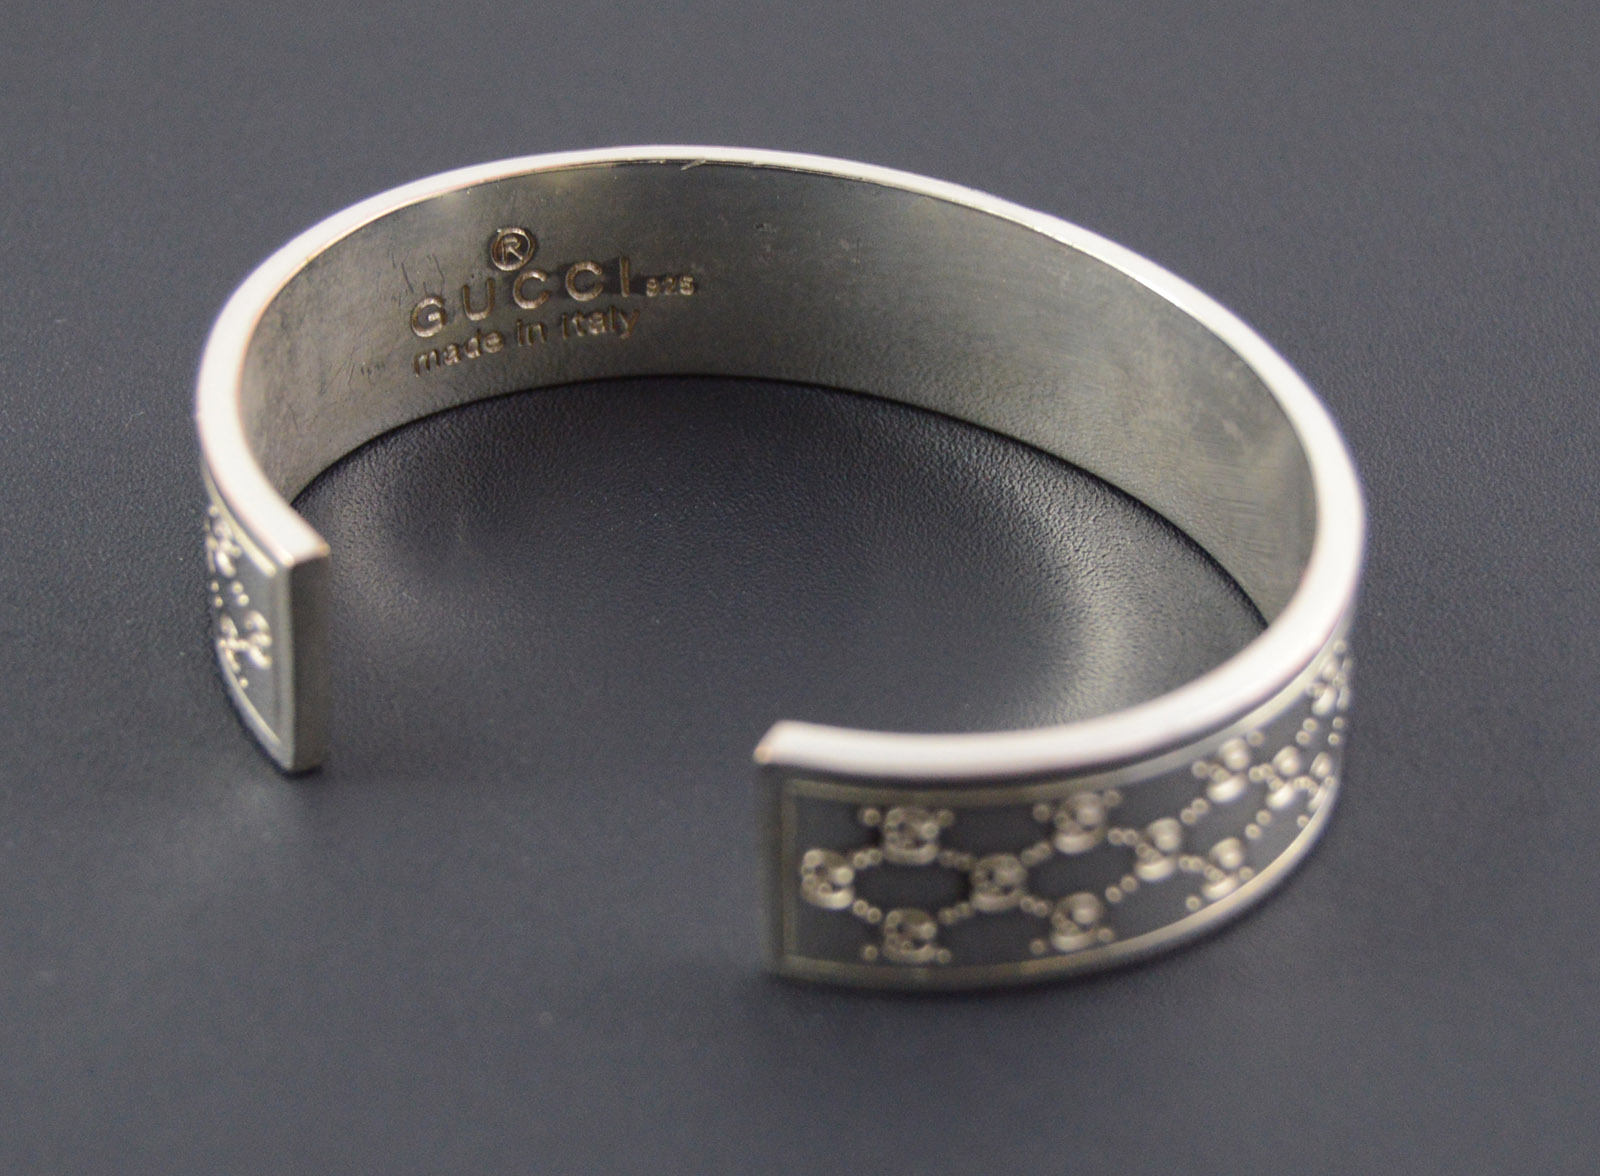 45 9g Solid Silver Gucci Patterned Cuff